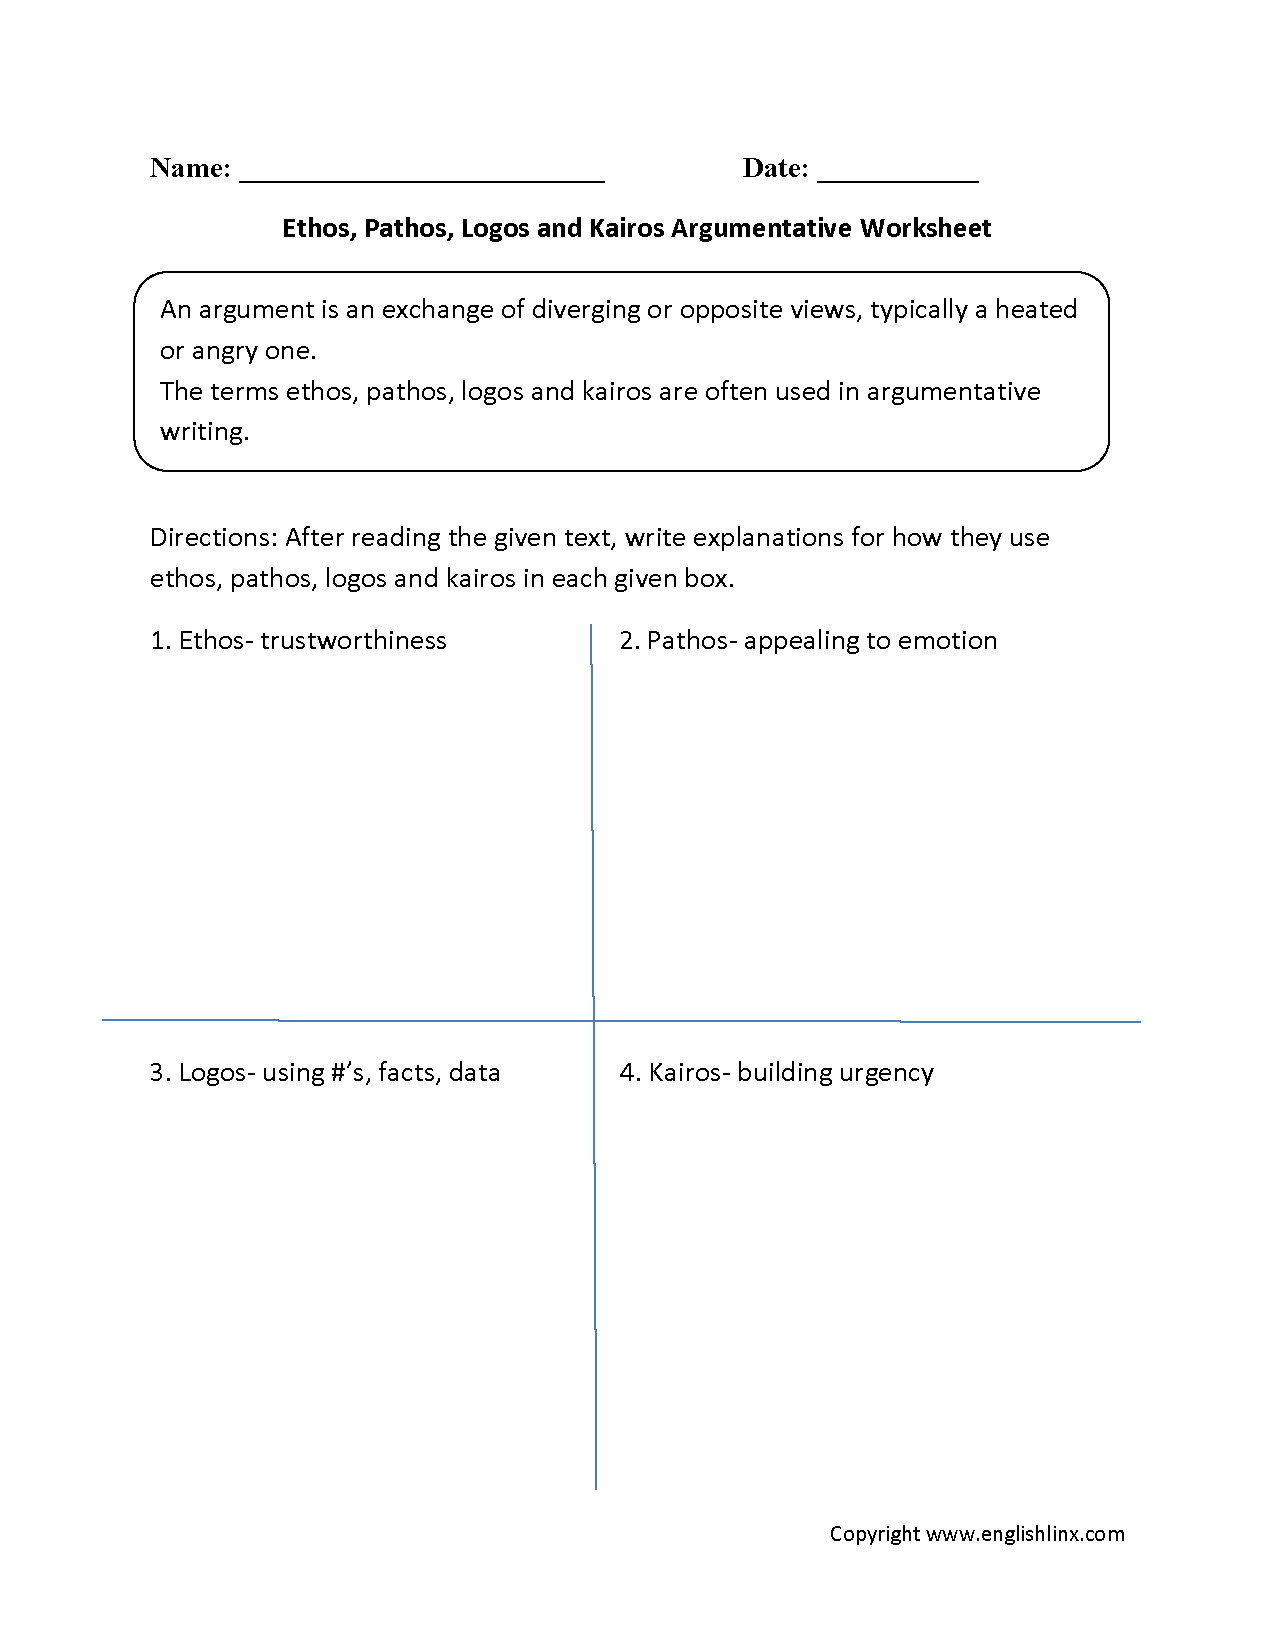 rhetorical modes worksheet Appendix c rhetorical modes matrix rhetorical modes are methods chart complete the following worksheet on rhetorical modes for academic essays using.